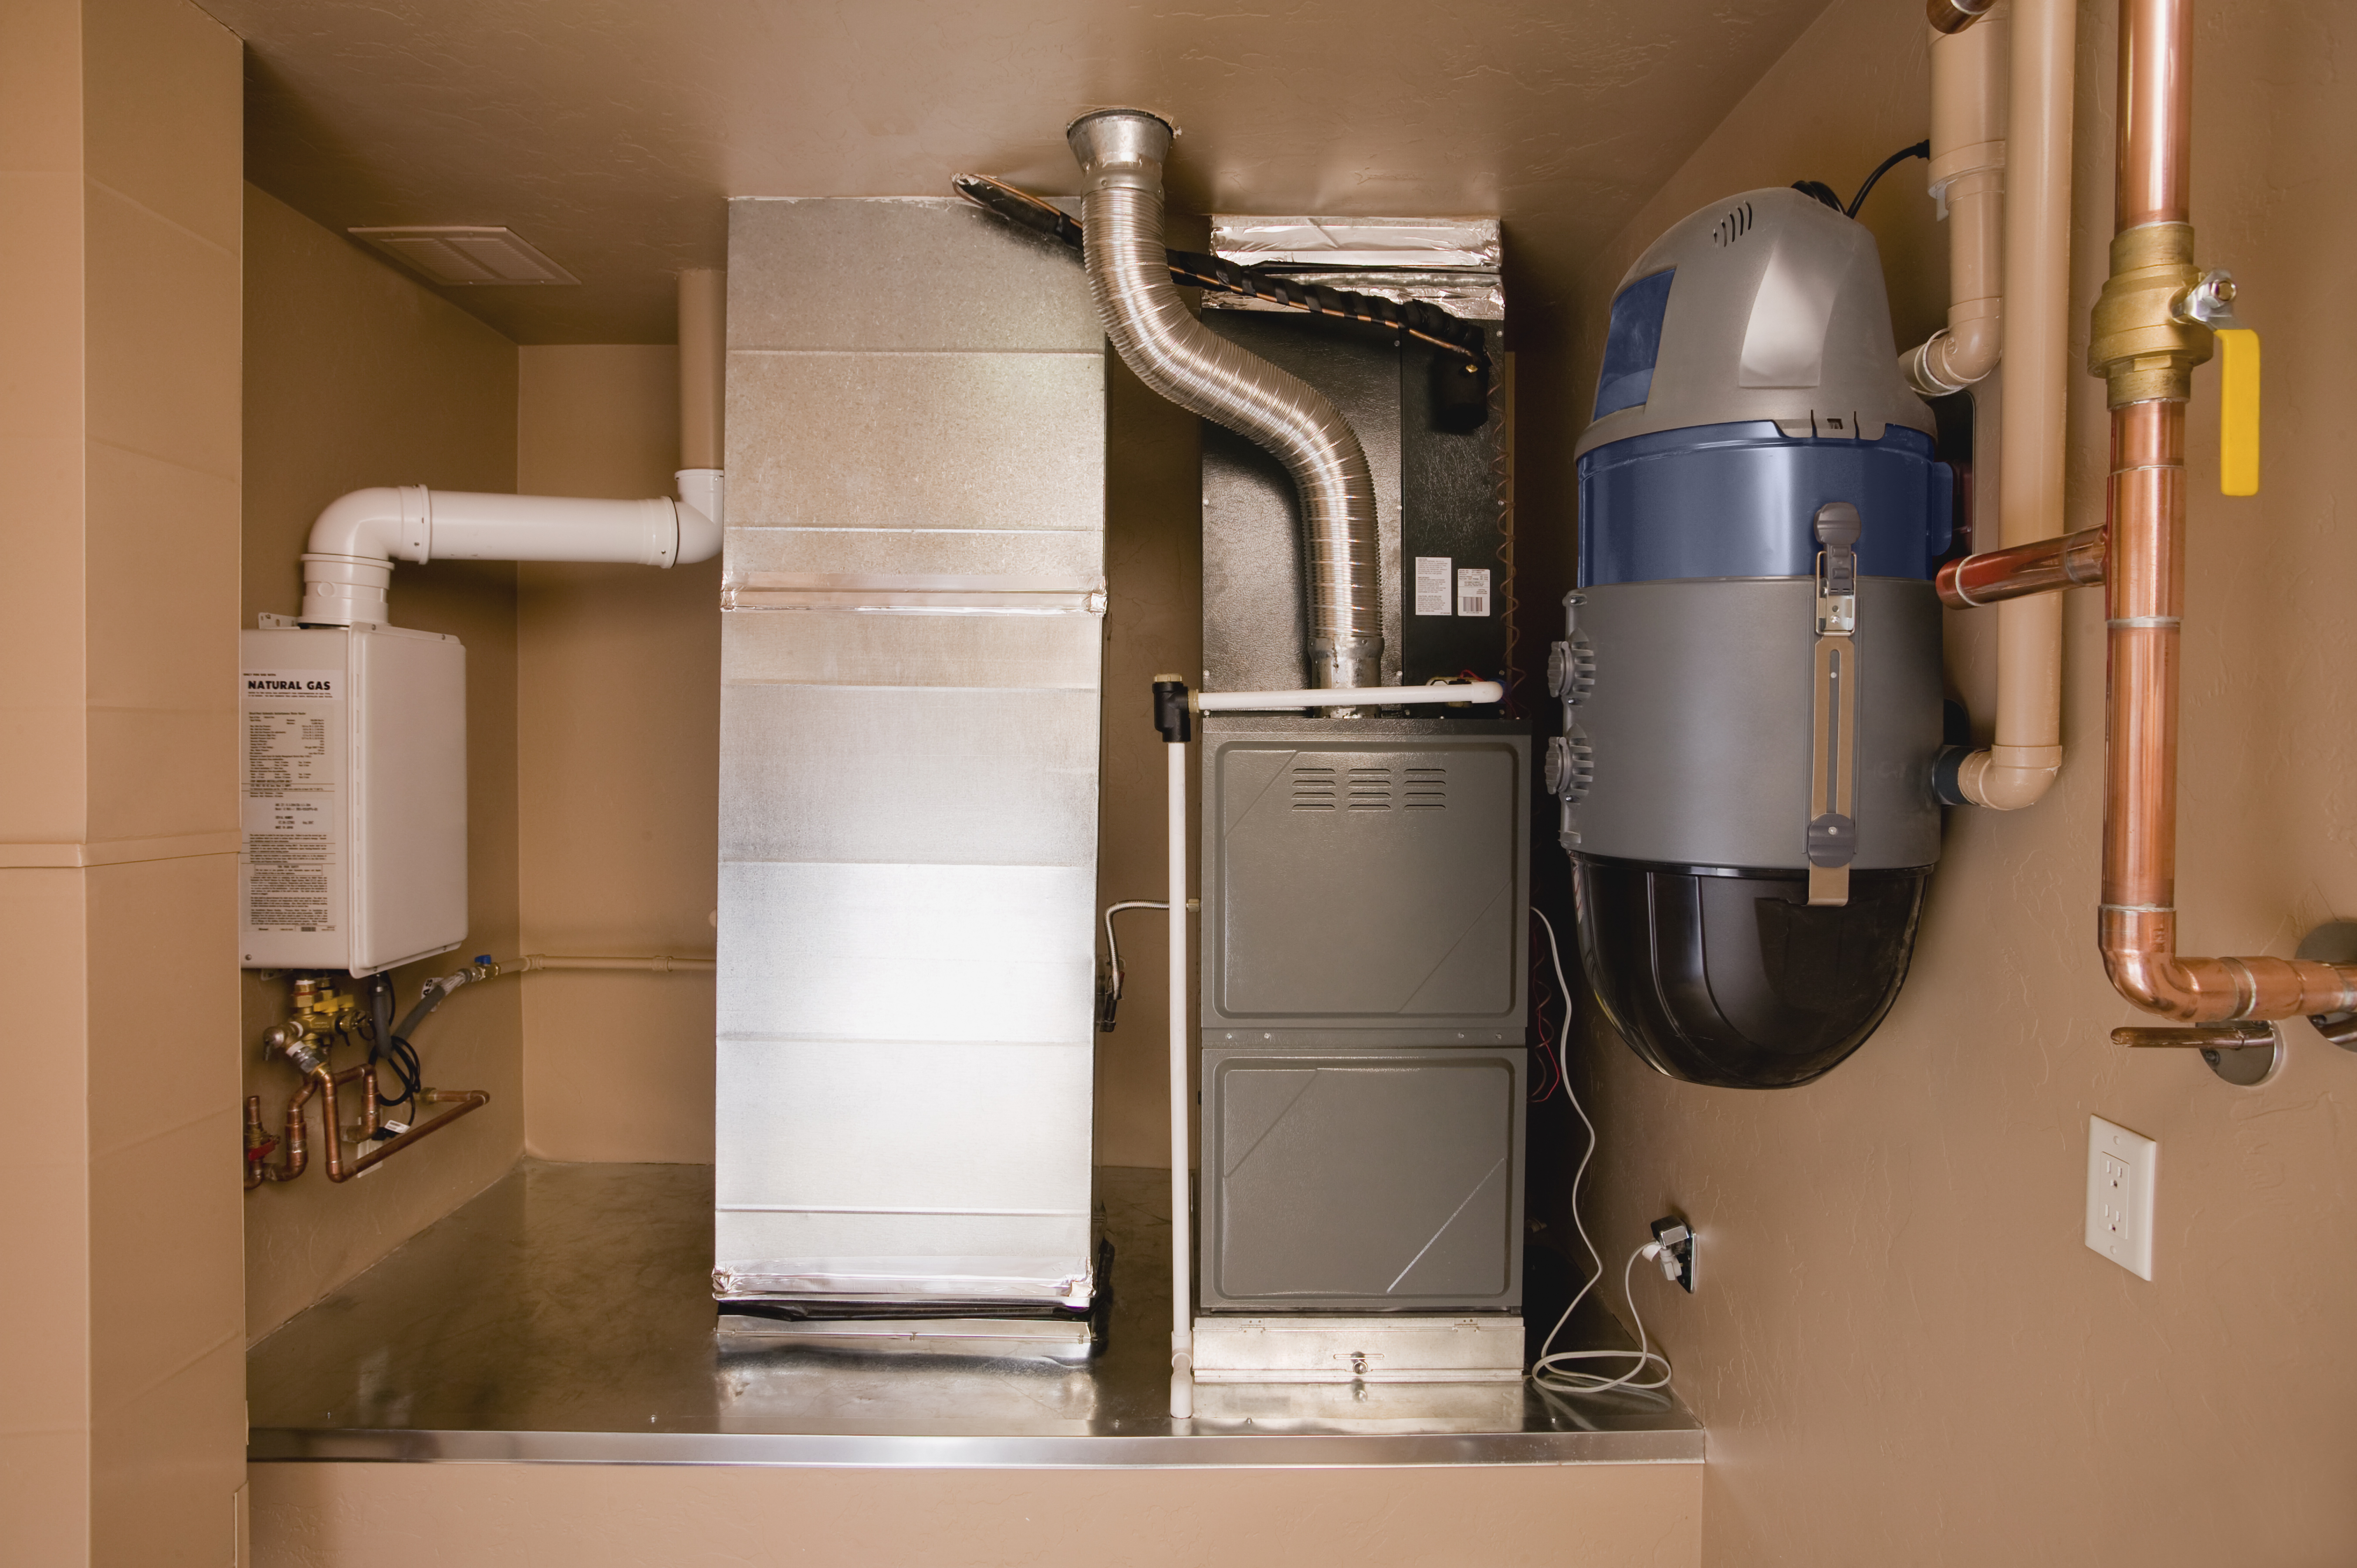 How Many BTUs Does a Furnace Need for a House? | Home Guides